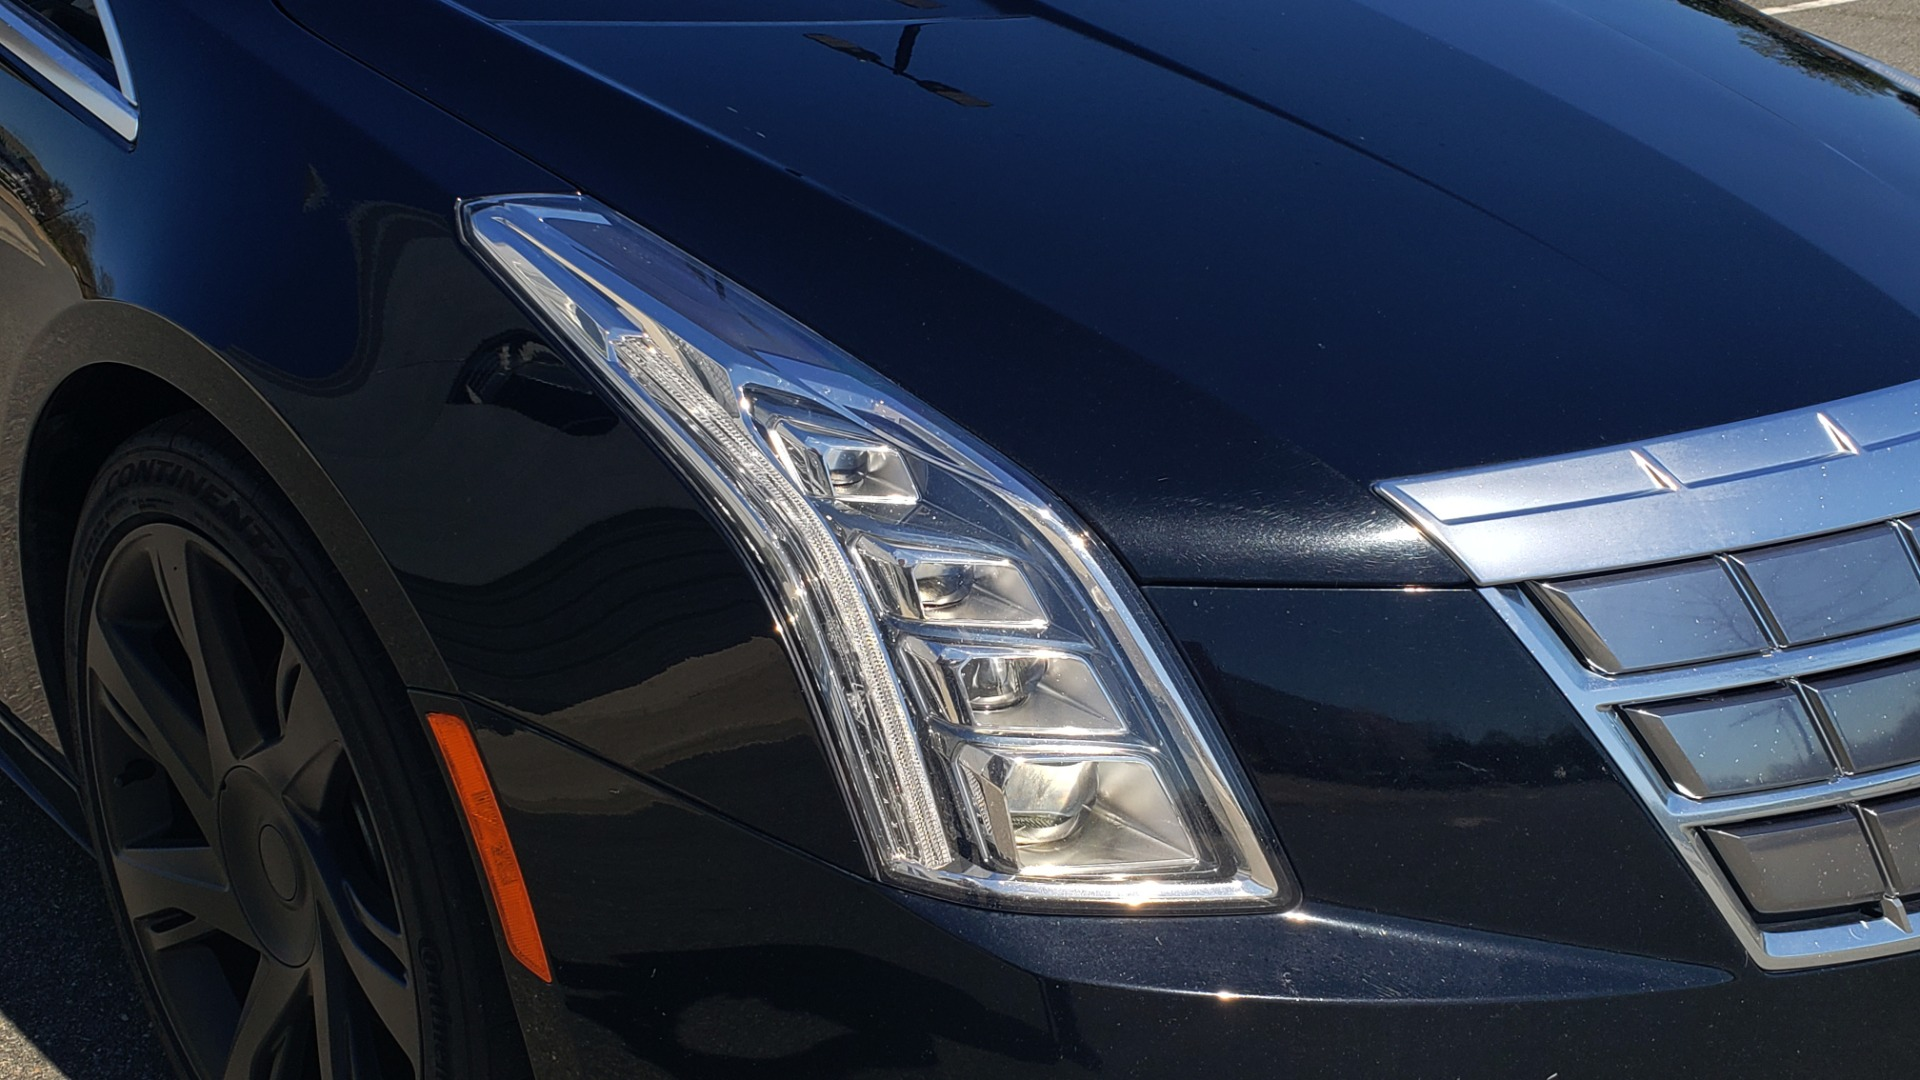 Used 2014 Cadillac ELR 2DR COUPE / HYBRID / NAV / BOSE / HEATED SEATS / REARVIEW for sale $19,995 at Formula Imports in Charlotte NC 28227 20